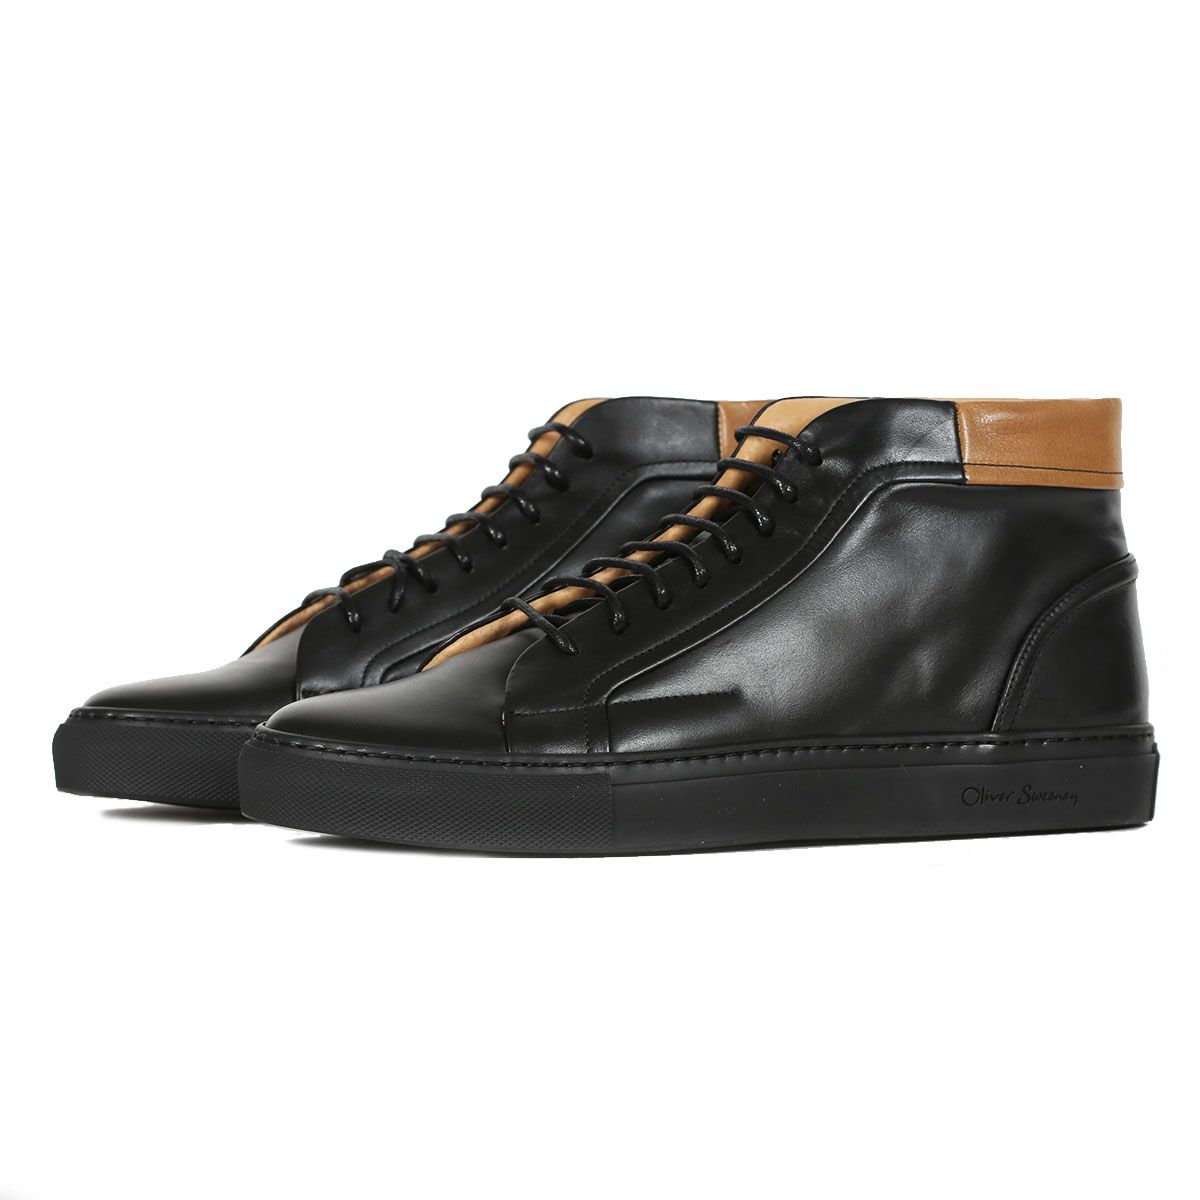 Oliver Sweeney Uzzano Black - Calf Leather High -Top Trainer